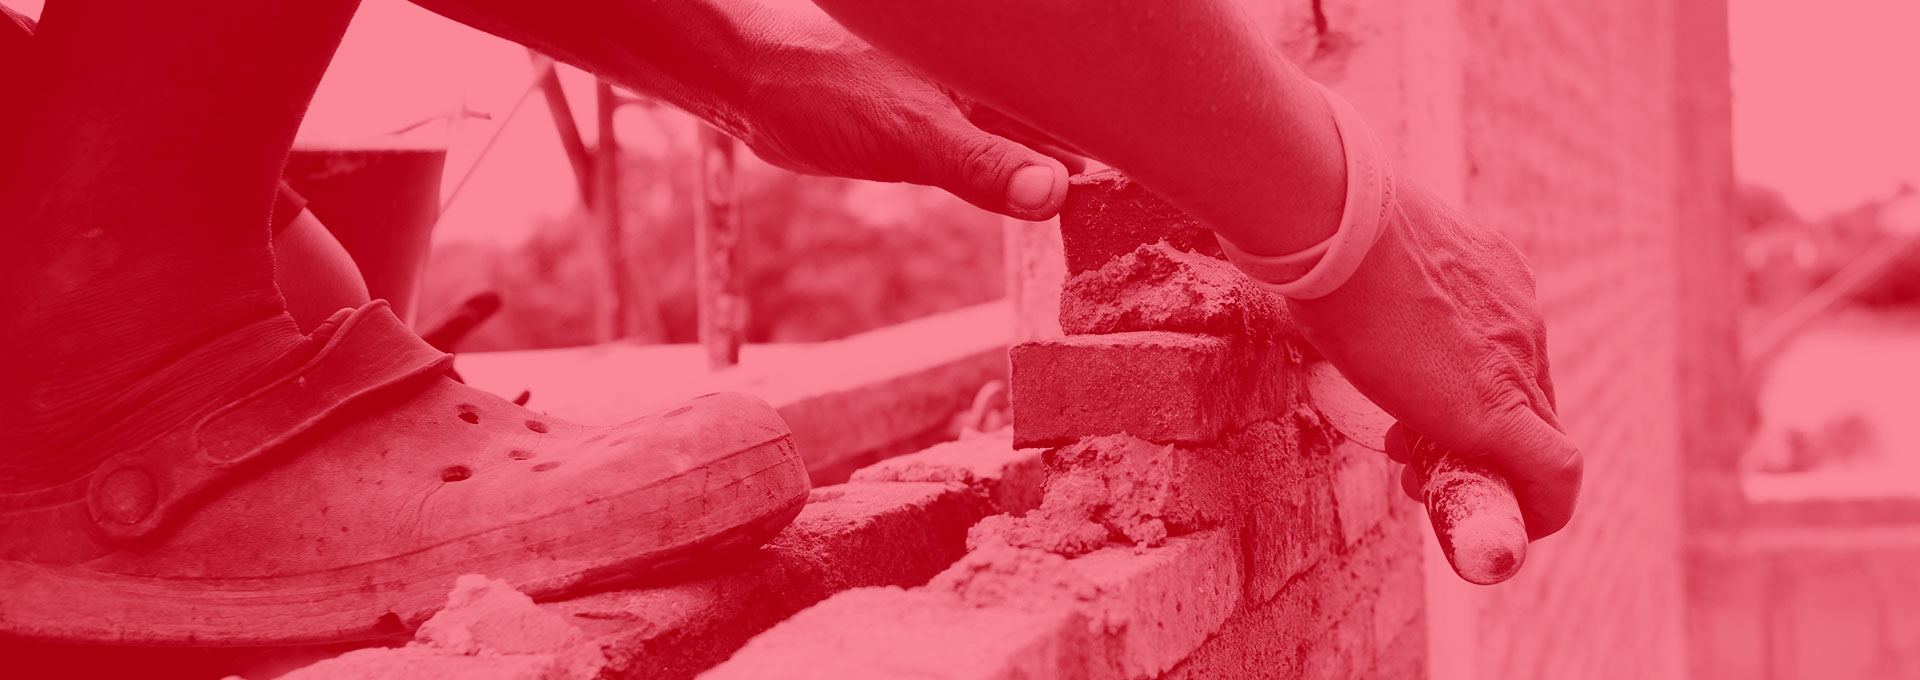 Sustainable Construction Materials: 5 Eco-Friendly Options Revolutionizing The Industry